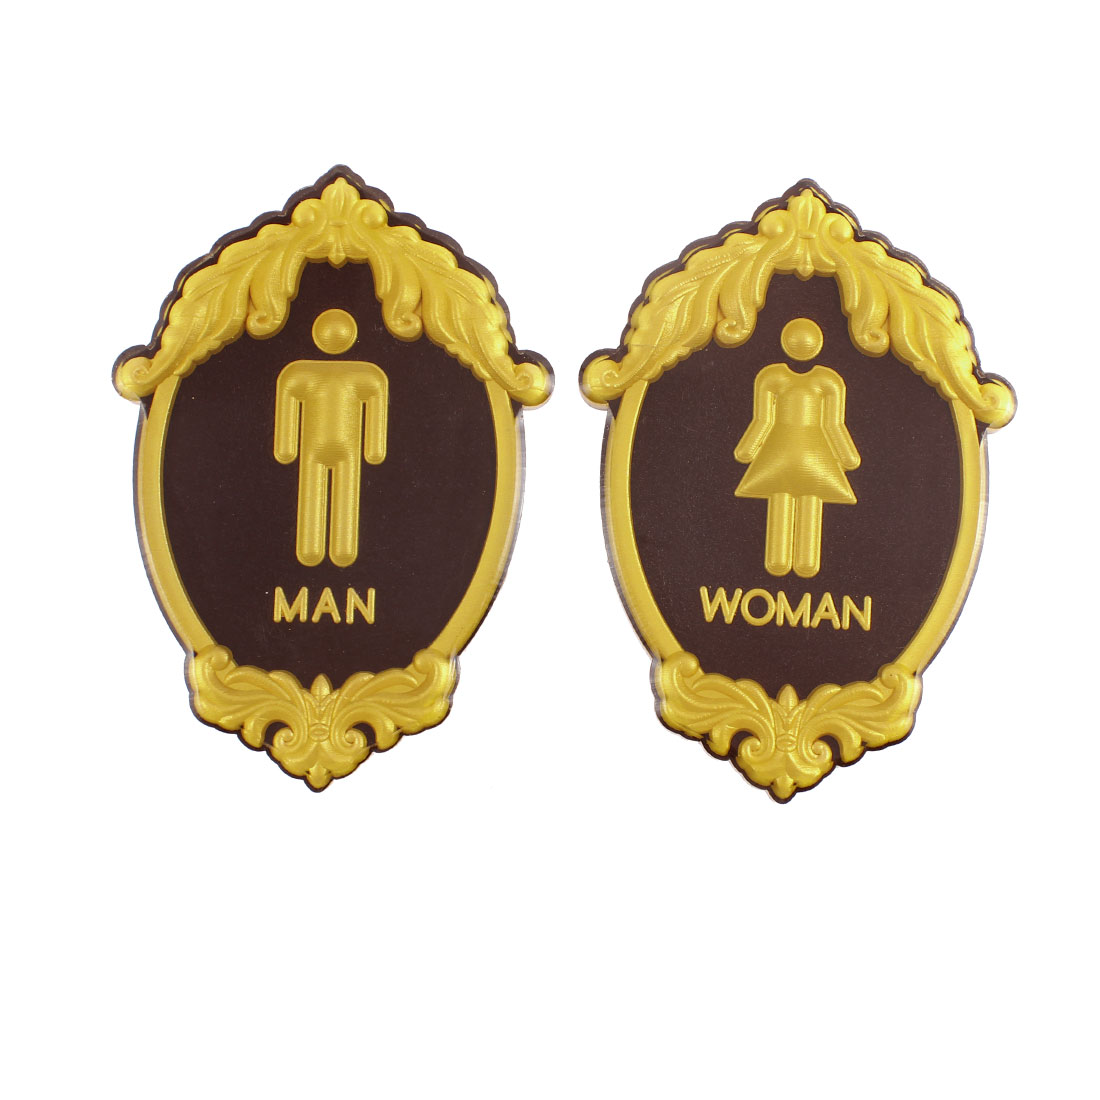 Acrylic Man Woman Washroom Toilet Notice Sign Instruction Board Pair